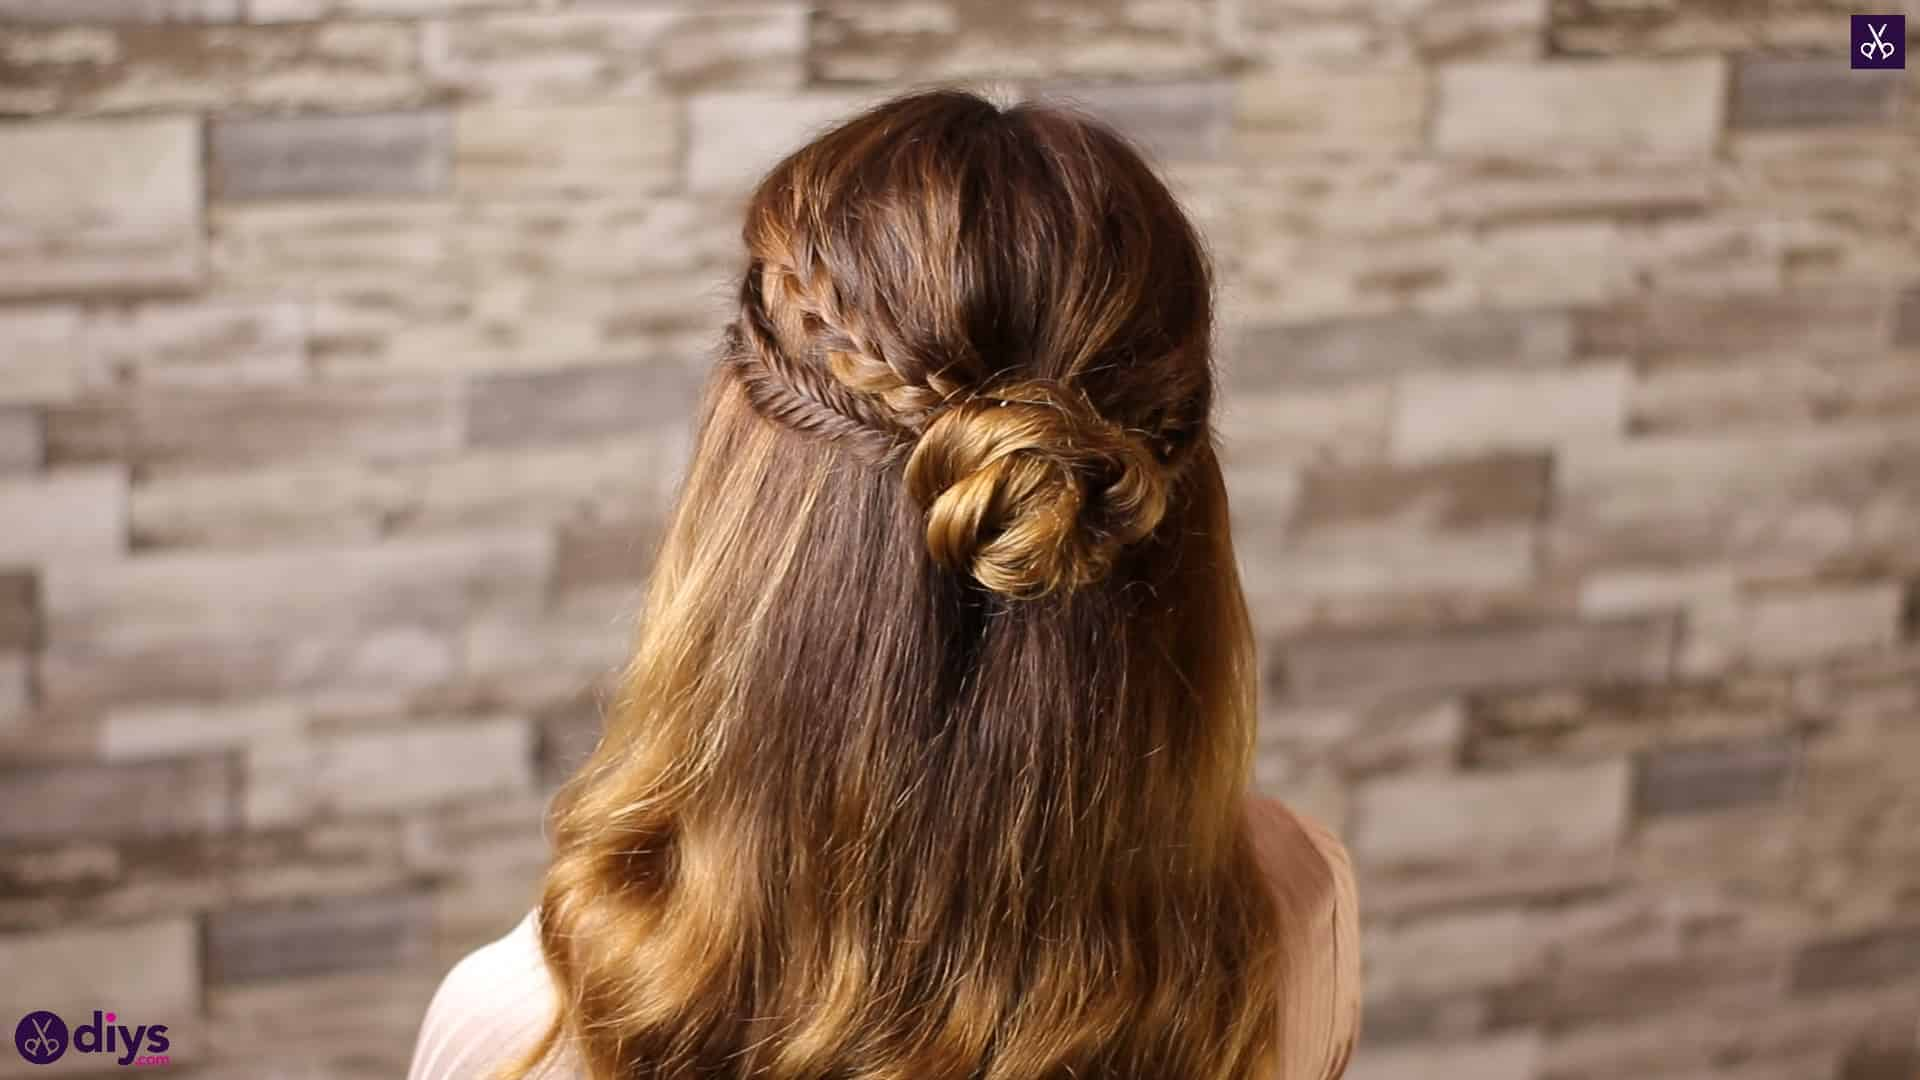 Half up, half down hairstyle for spring66